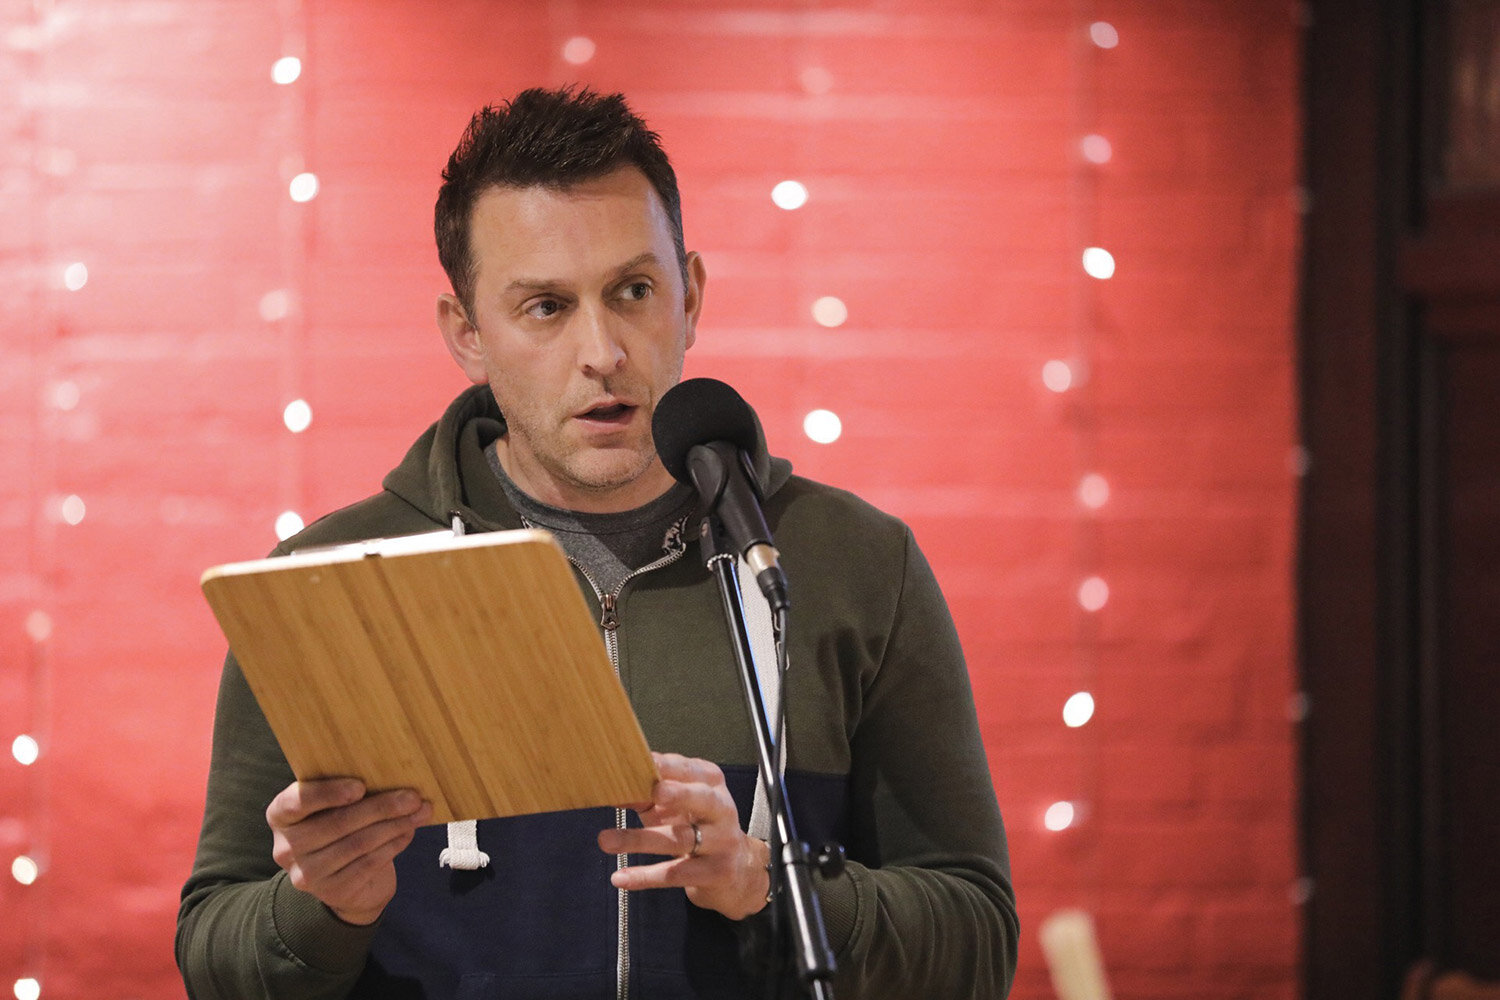 jason-conway-published-poet-gloucestershire-photo-of-him-performing-1500pxl.jpg